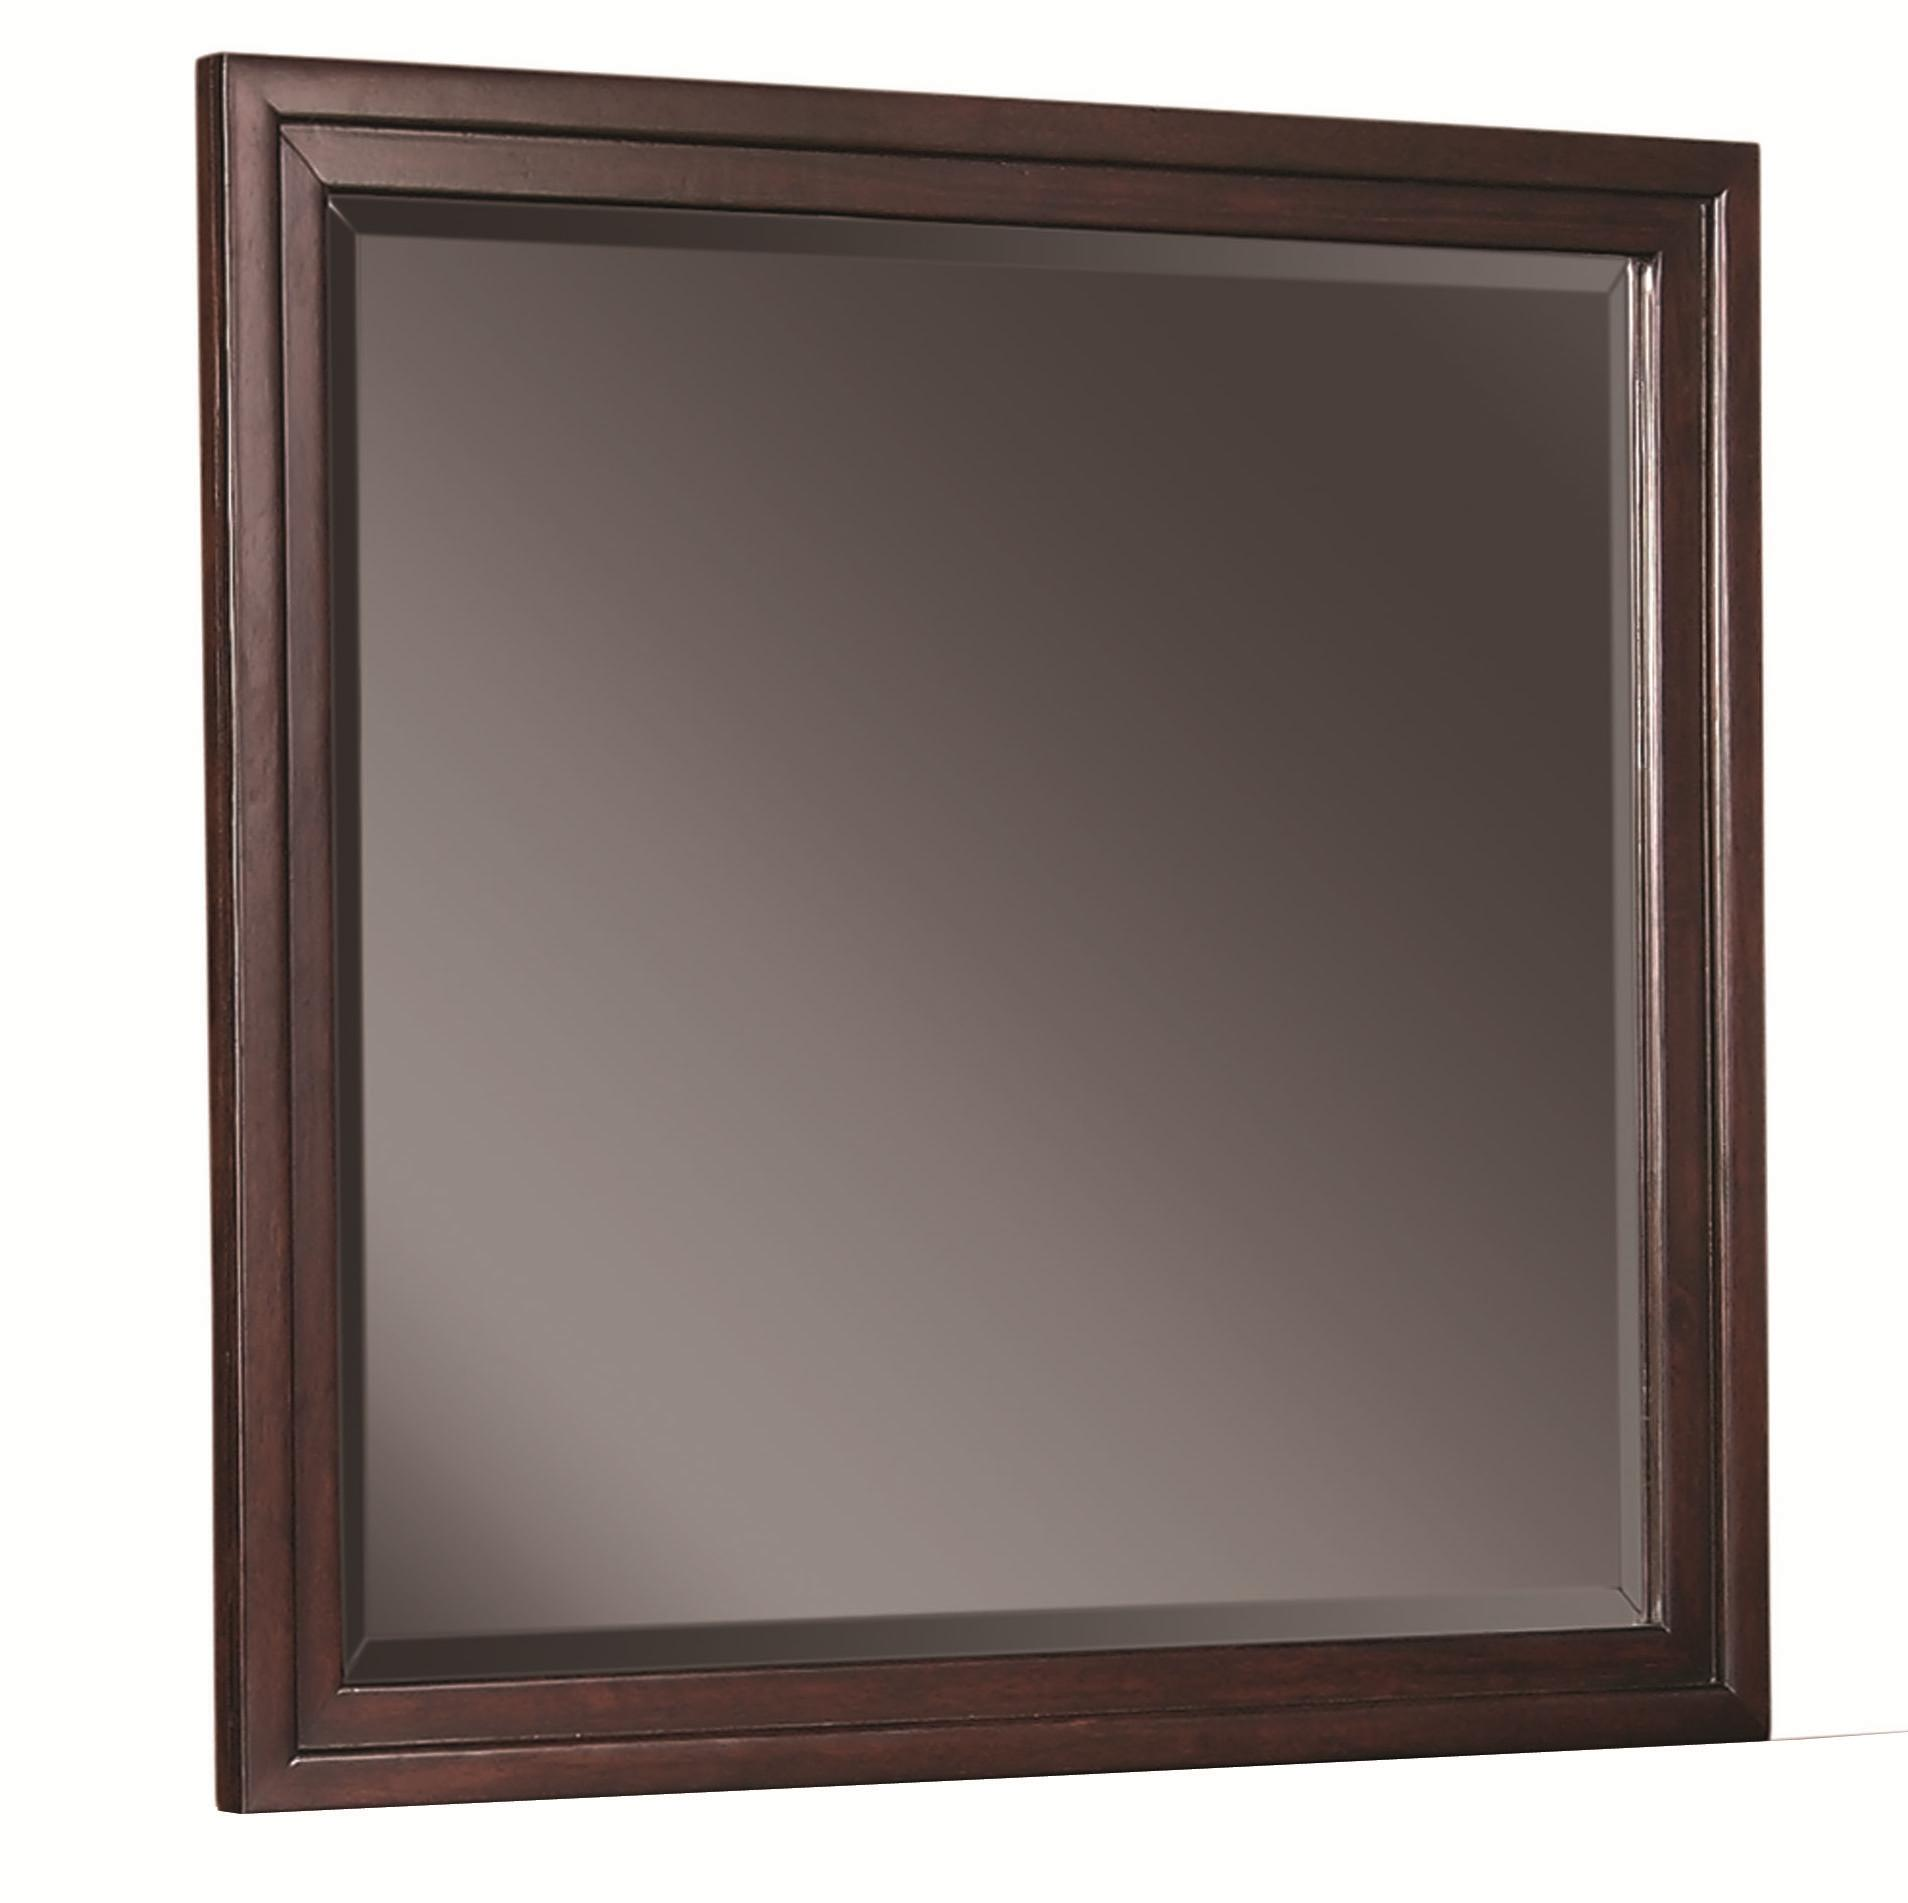 Aspenhome Lincoln Park Chesser Mirror - Item Number: I82-463